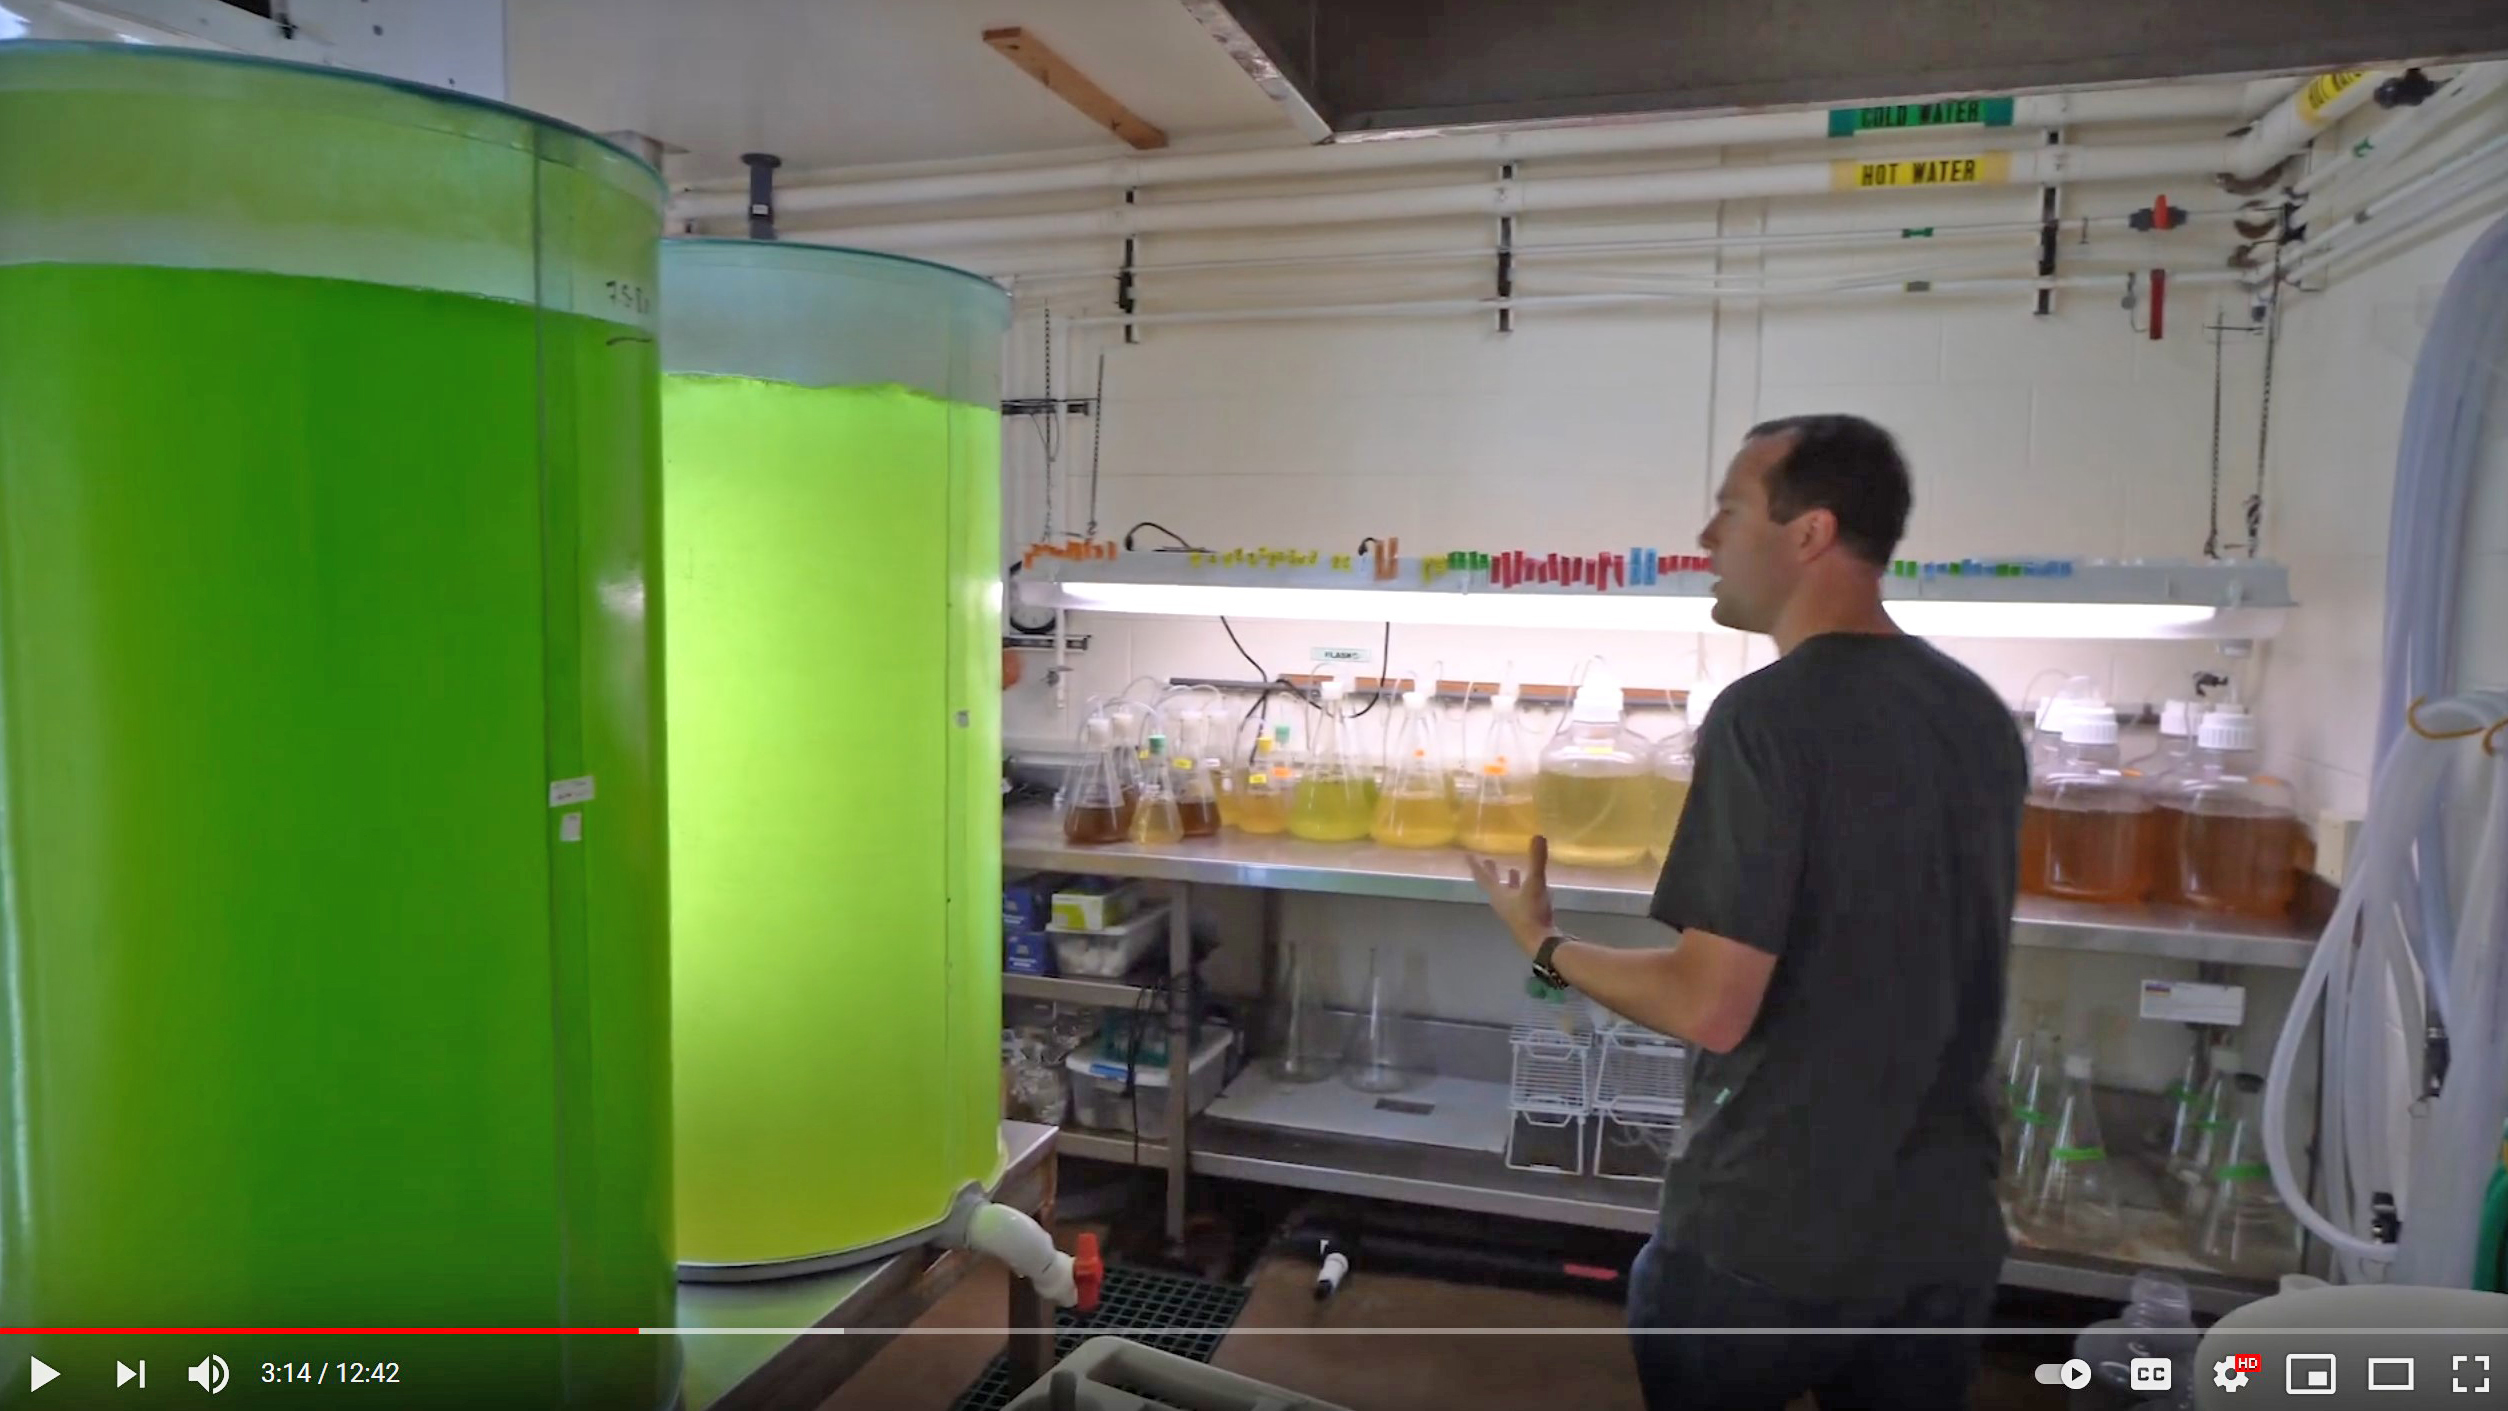 Researcher stands in an aquaculture lab by two large tanks full of bright green algea.